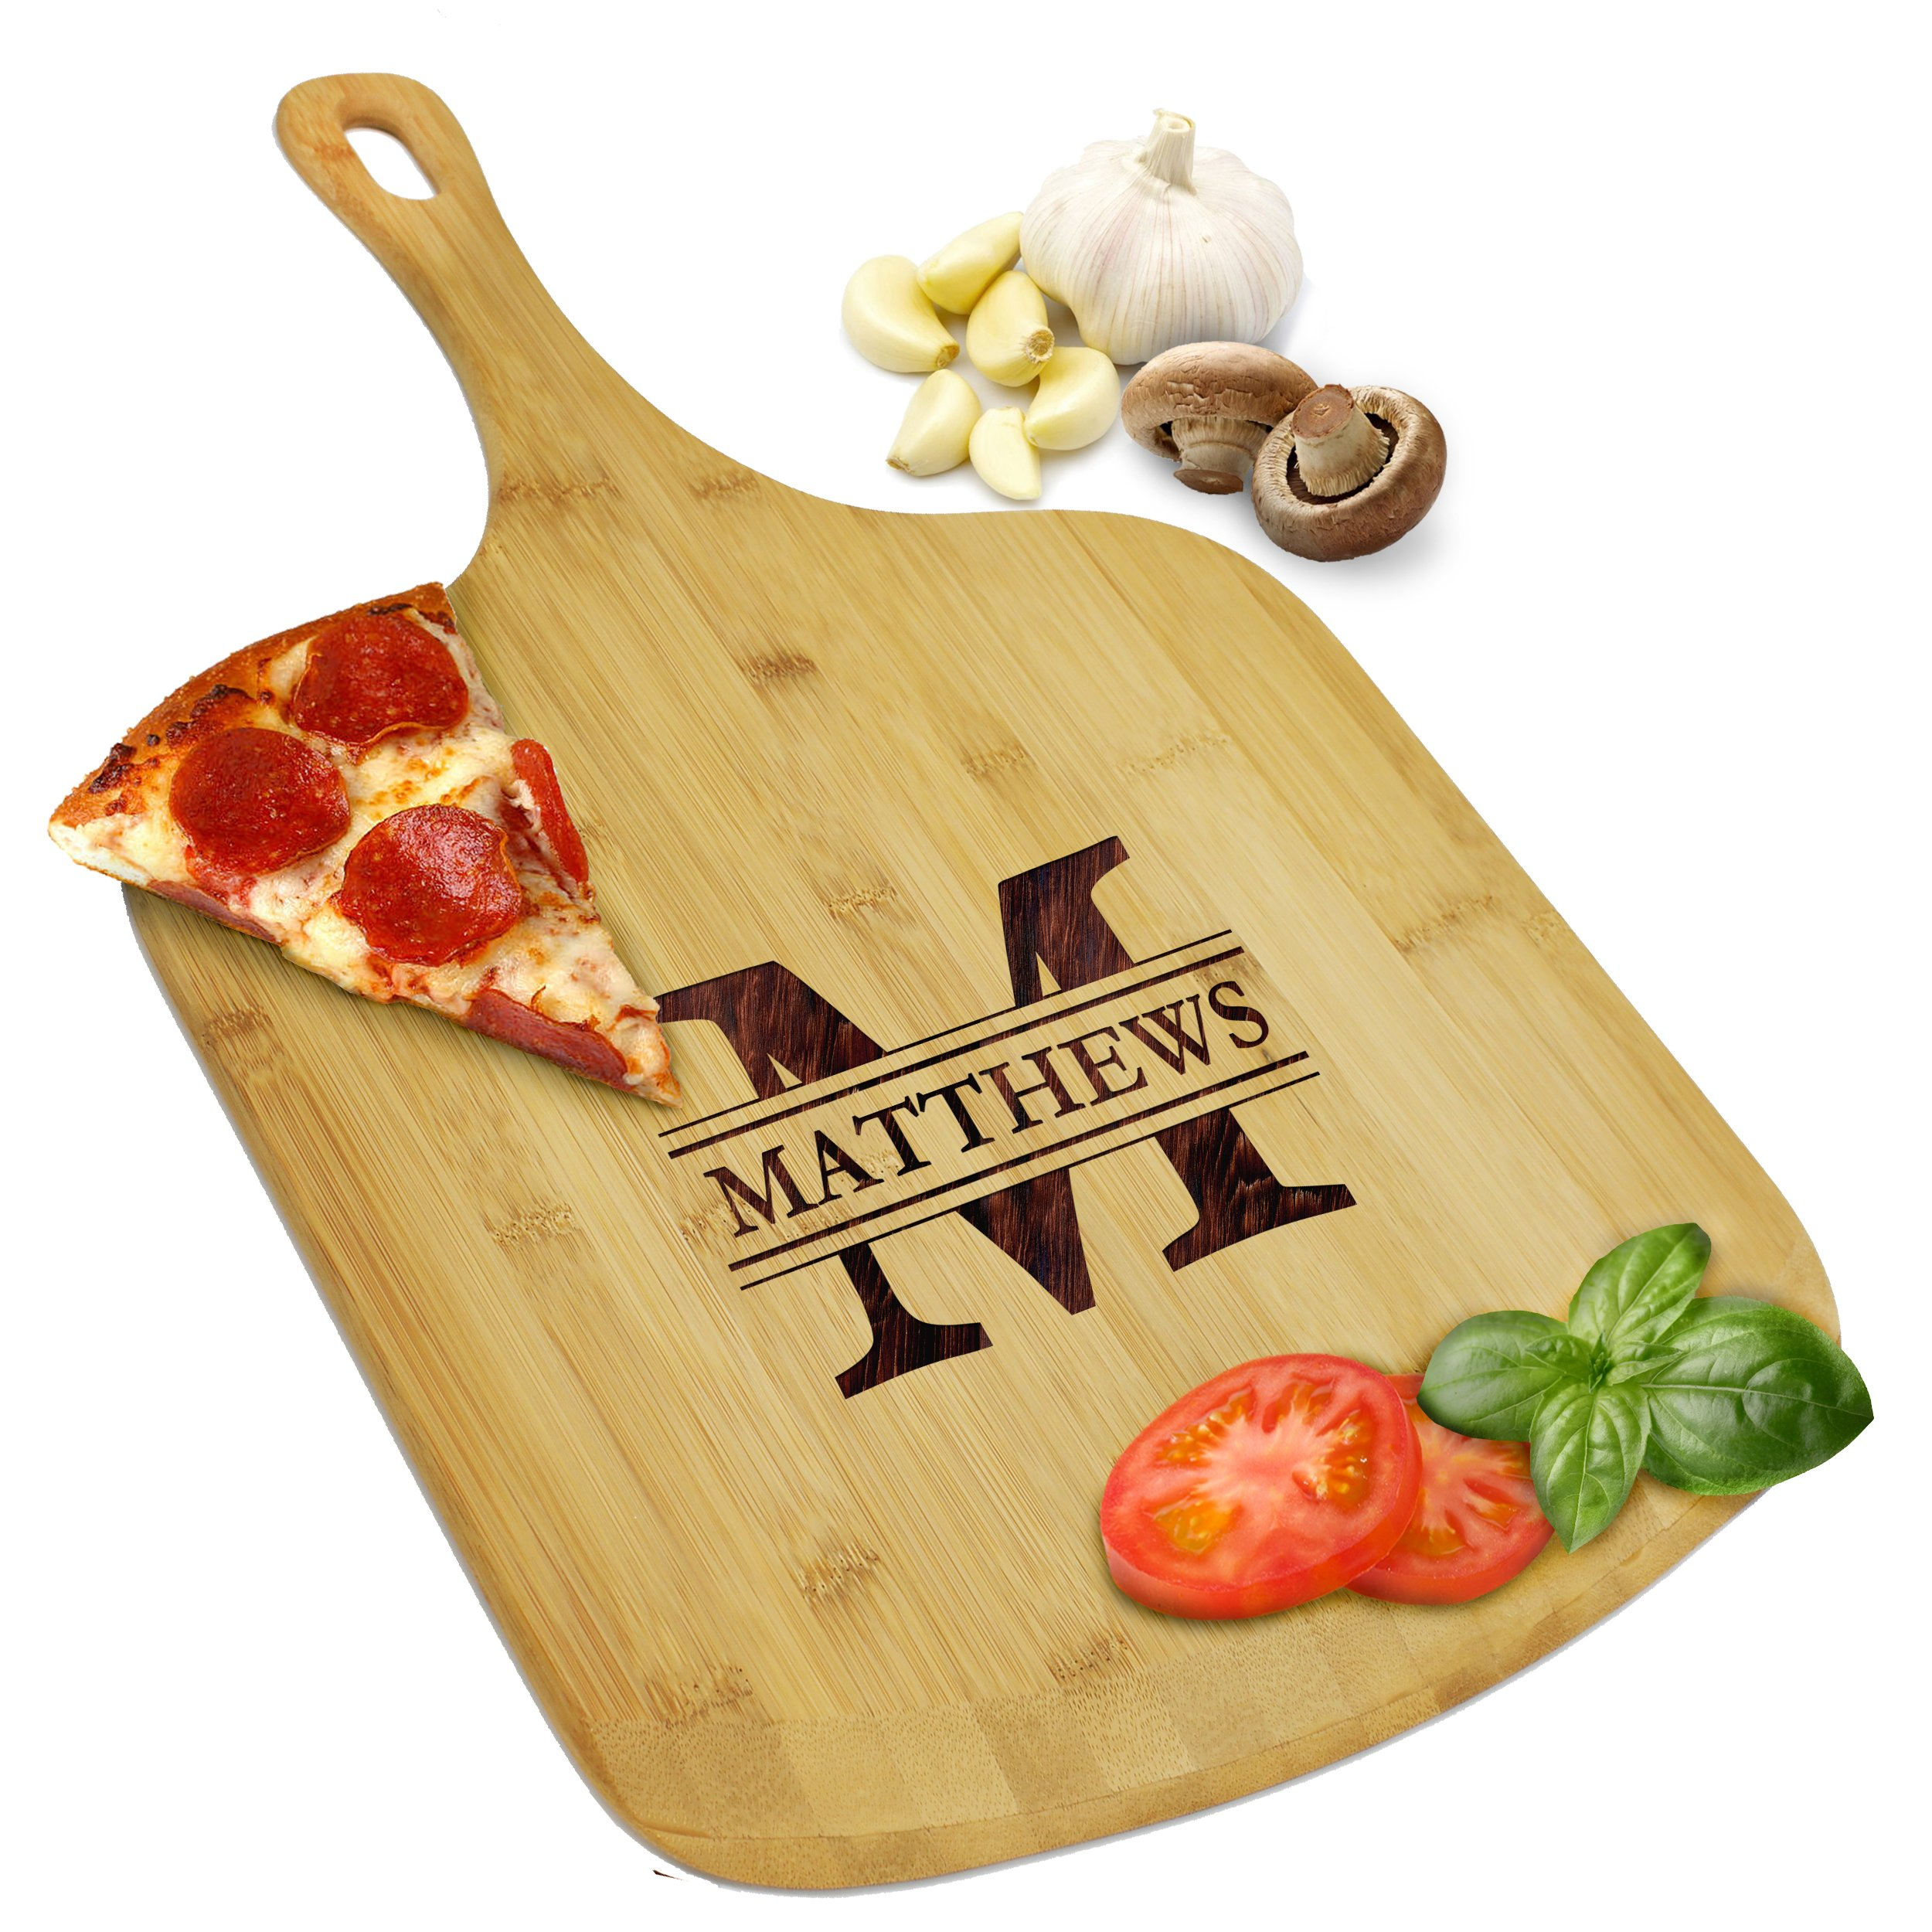 Custom Personalized Pizza Peel Bamboo Wood Paddle Board - Housewarming Pizza Lovers Gift - Engraved for Free by My Personal Memories